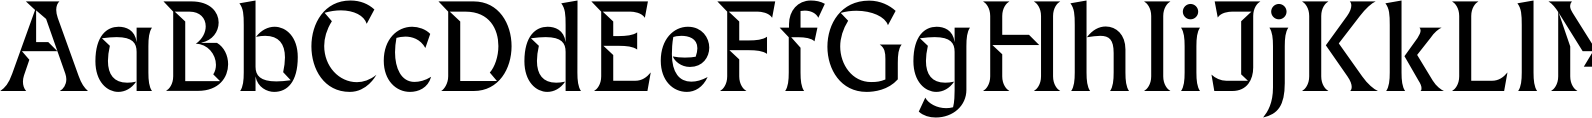 Fixen FY Regular Font